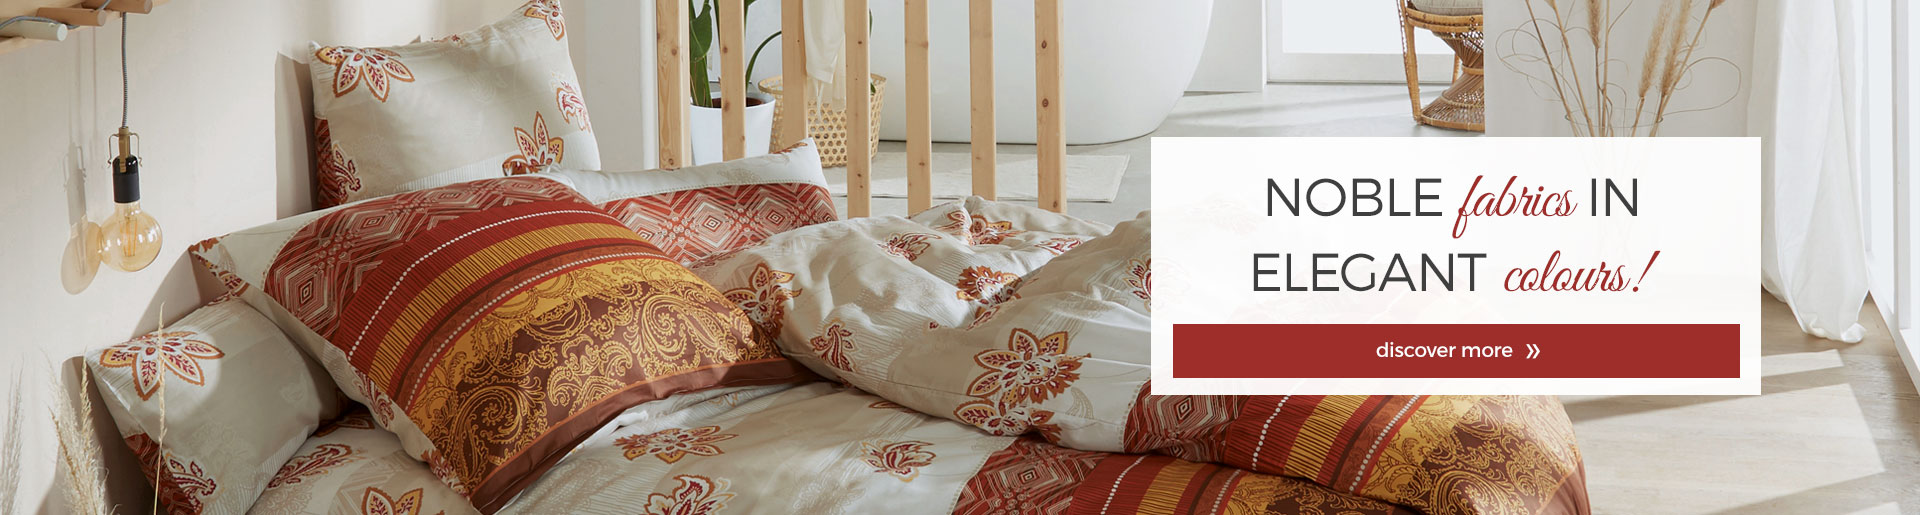 noble fabrics in elegant colours